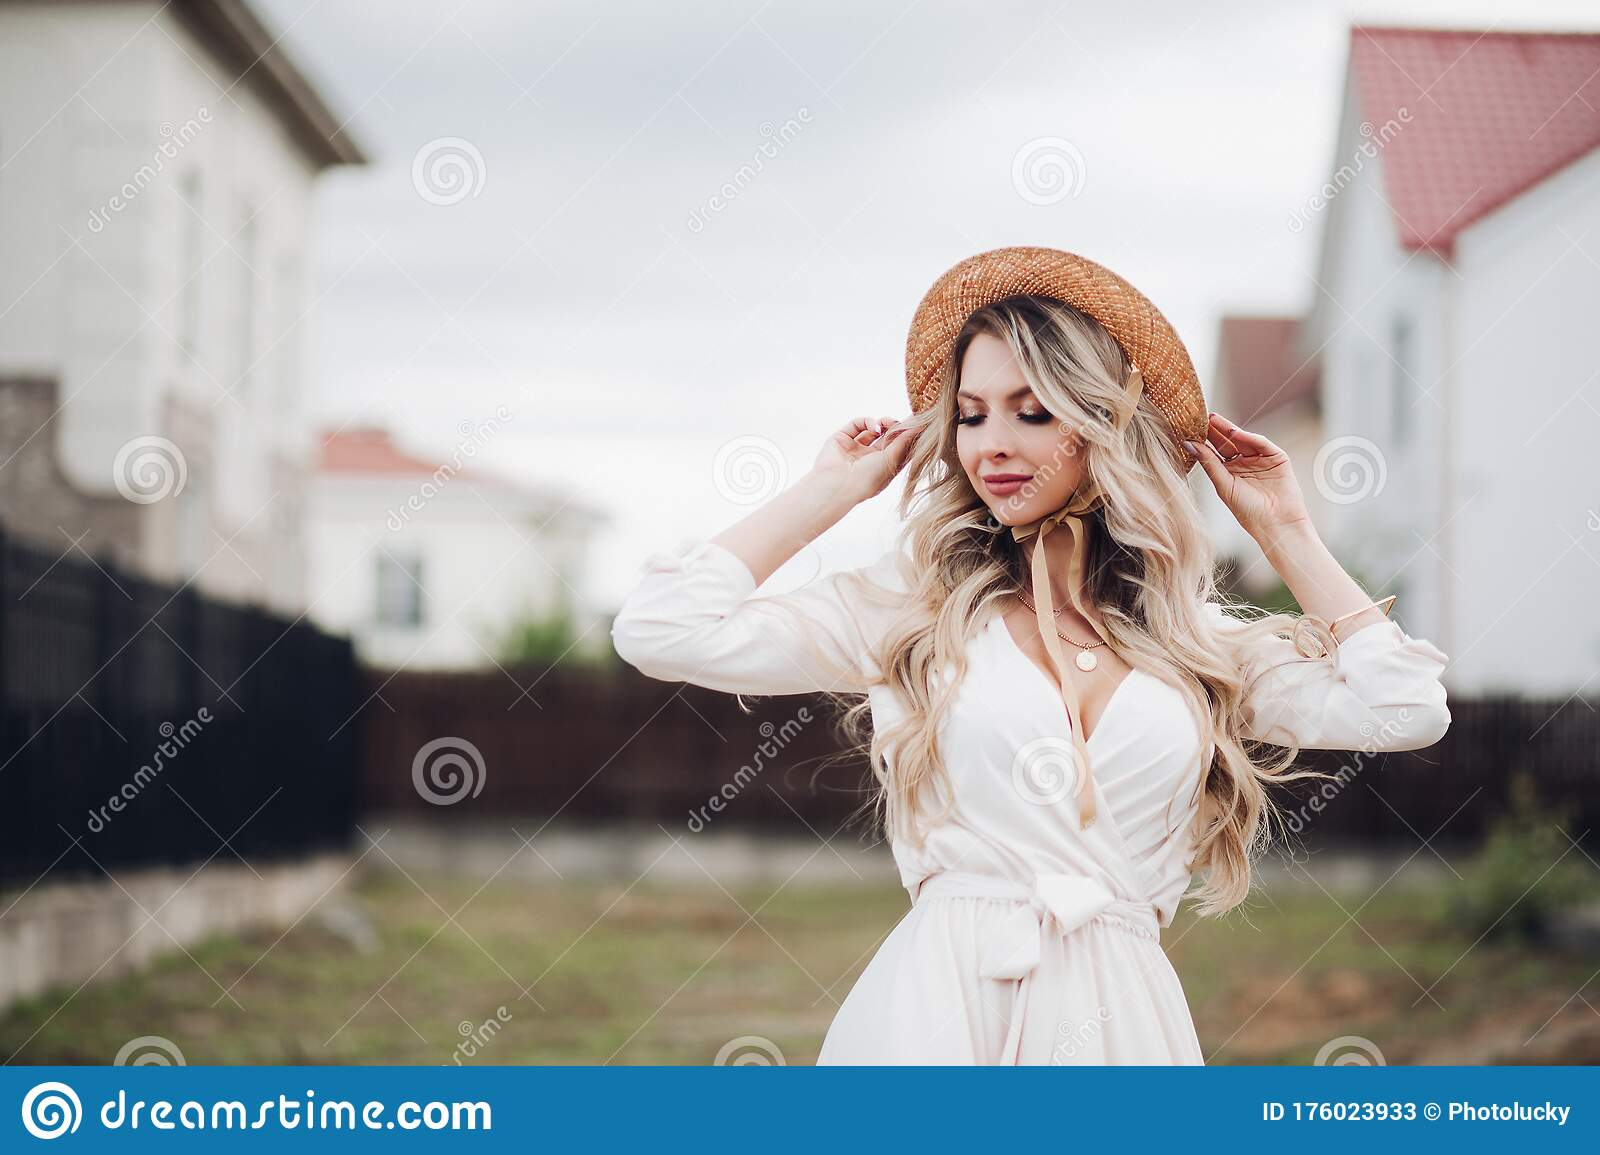 Dress blonde outside photography